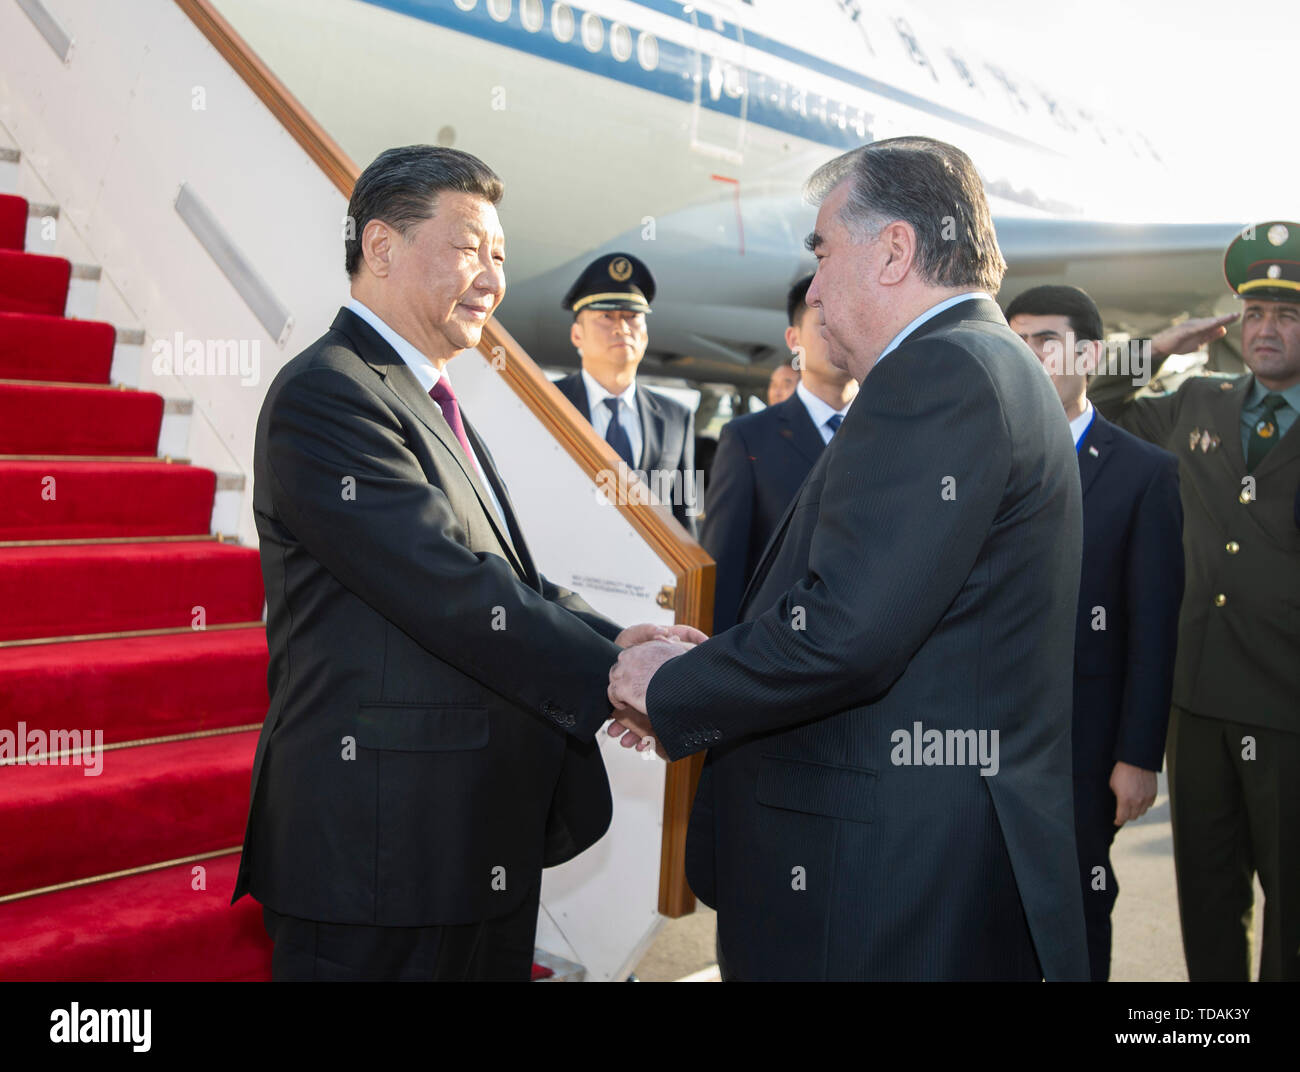 Dushanbe, Tajikistan. 14th June, 2019. Chinese President Xi Jinping (L) is warmly received by Tajik President Emomali Rahmon upon his arrival at the airport in Dushanbe, Tajikistan, June 14, 2019. Xi arrived here Friday for the fifth summit of the Conference on Interaction and Confidence Building Measures in Asia (CICA) and a state visit to Tajikistan. Credit: Xie Huanchi/Xinhua/Alamy Live News - Stock Image